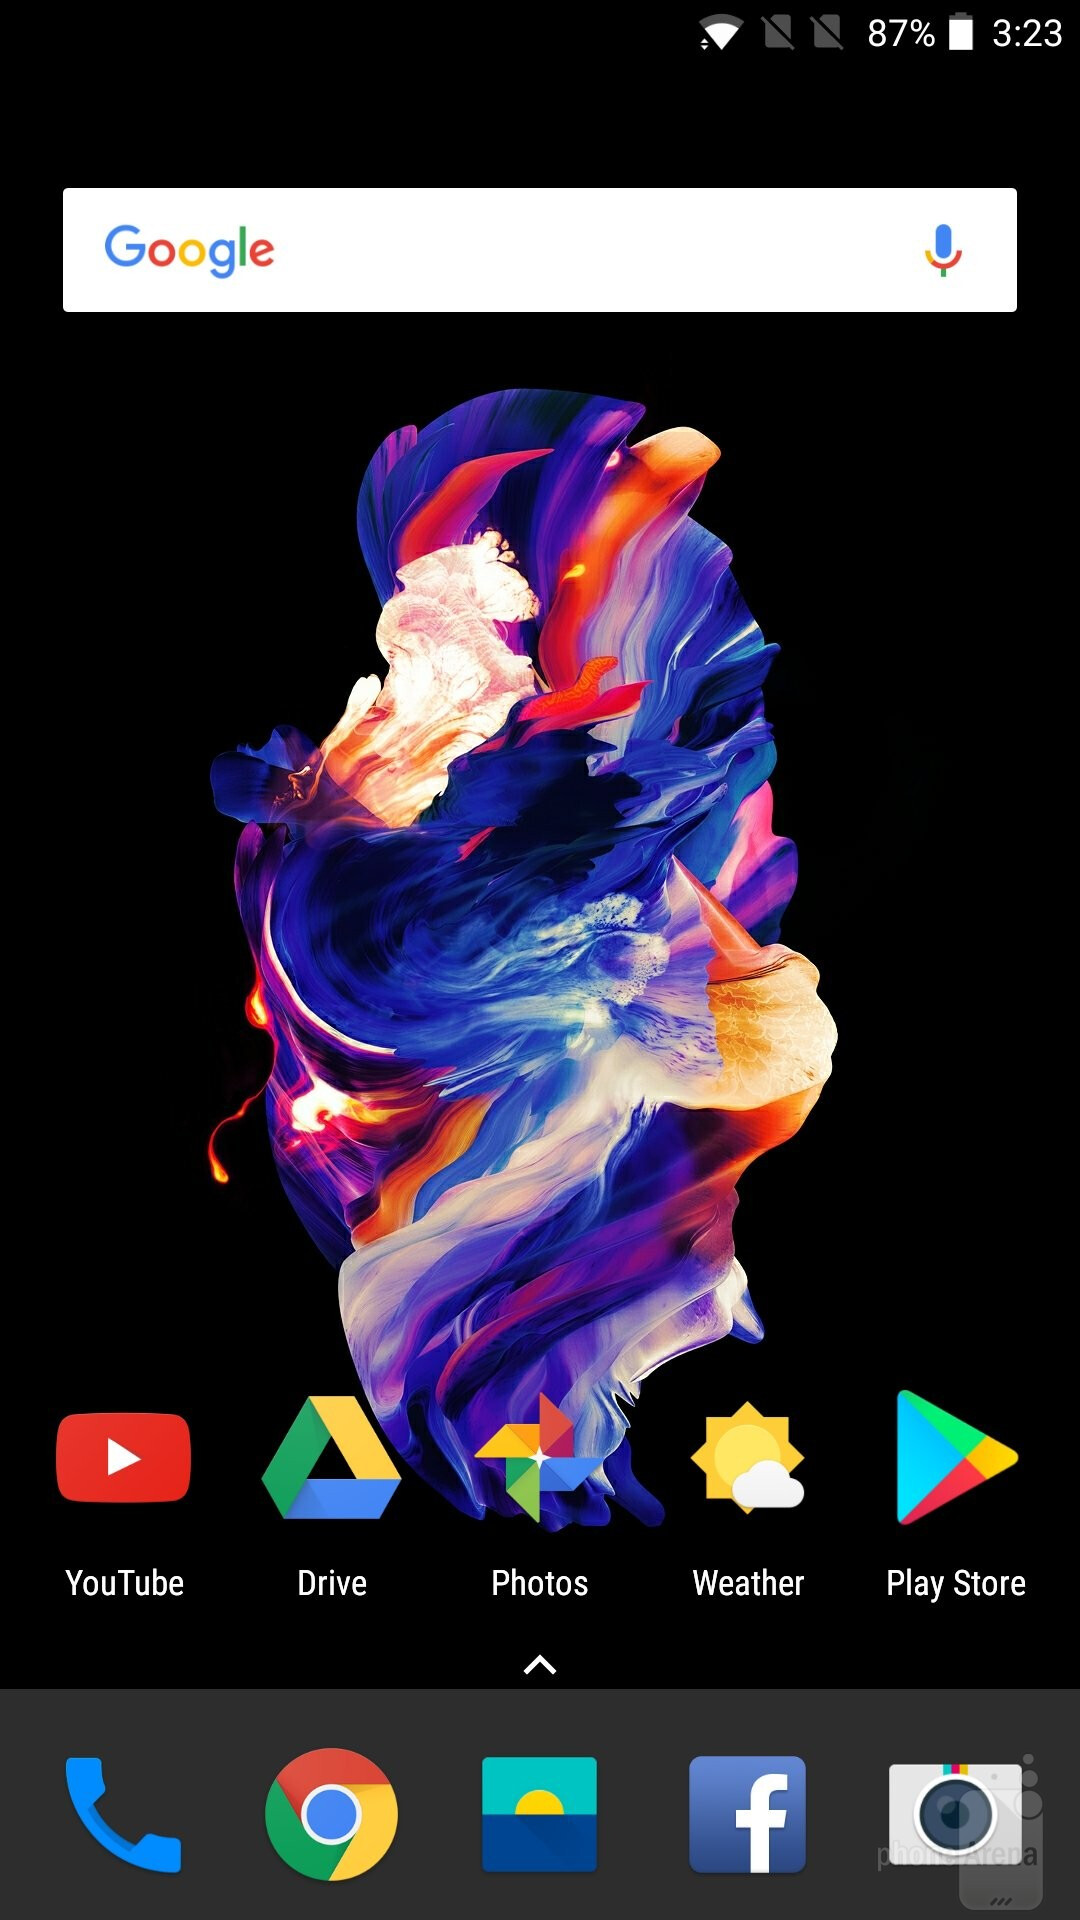 The OnePlus 5 features a clean Android interface that the company calls OxygenOS